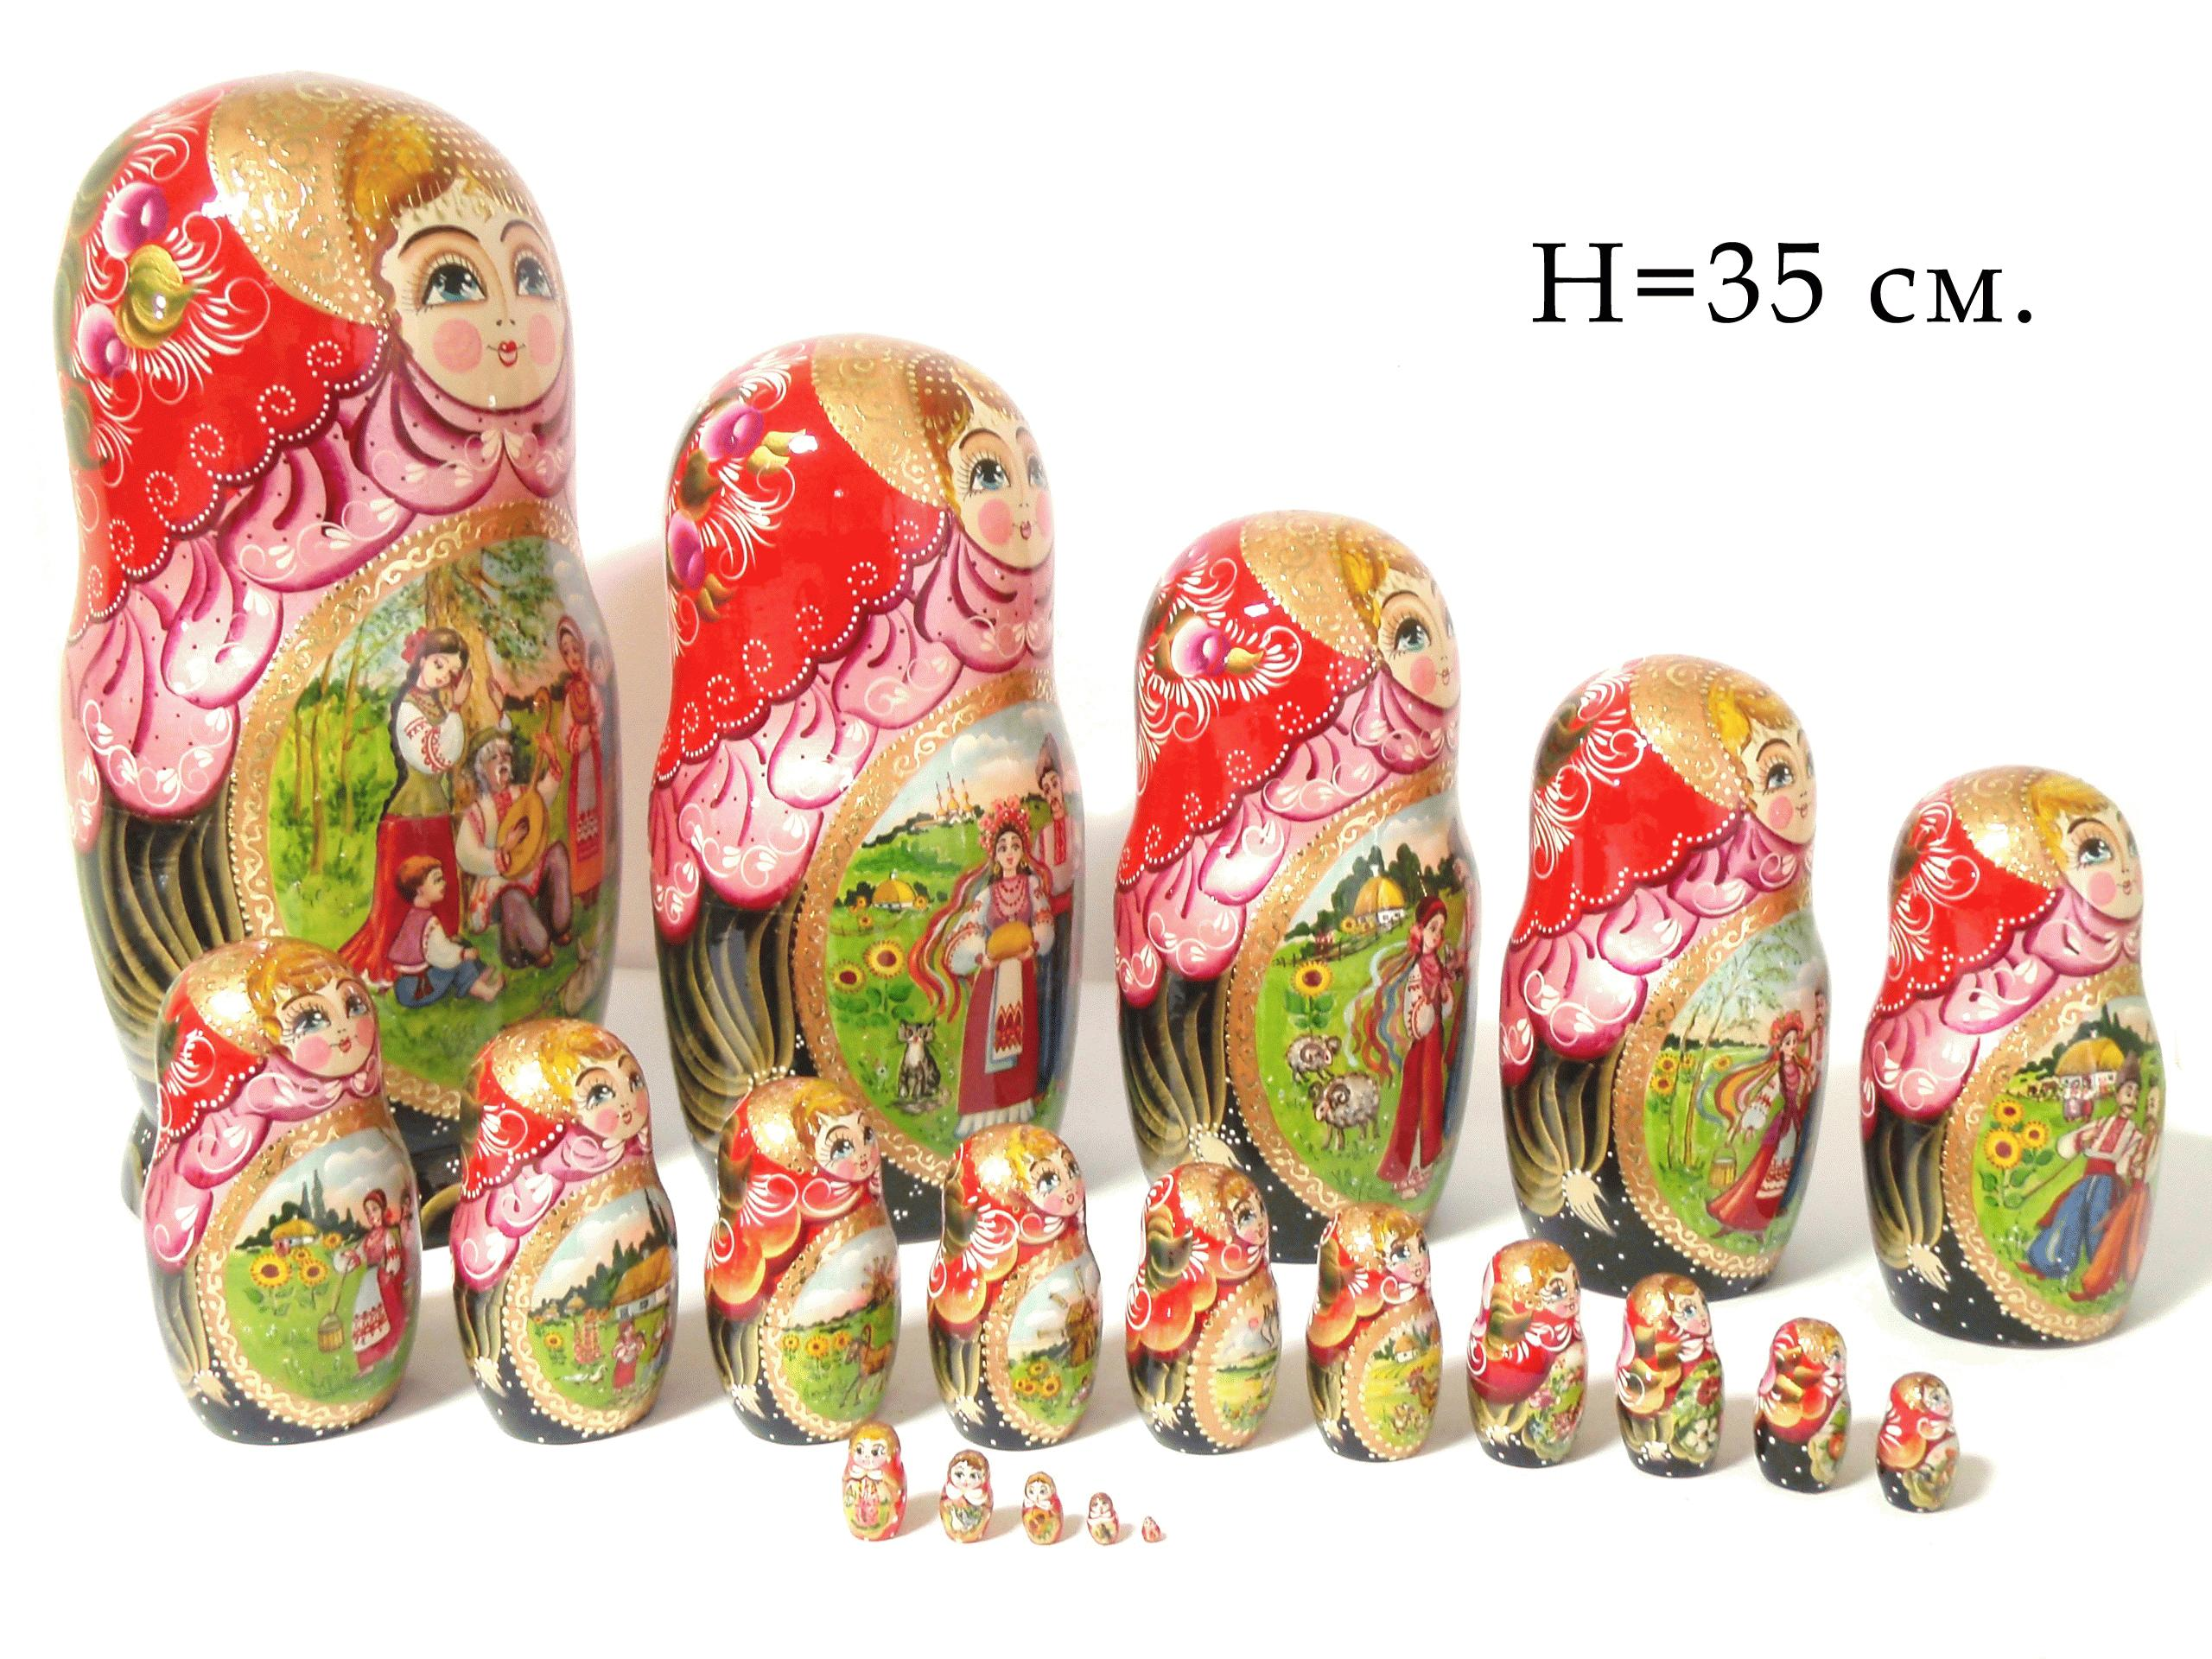 big matryoshka doll on matryoshka biz